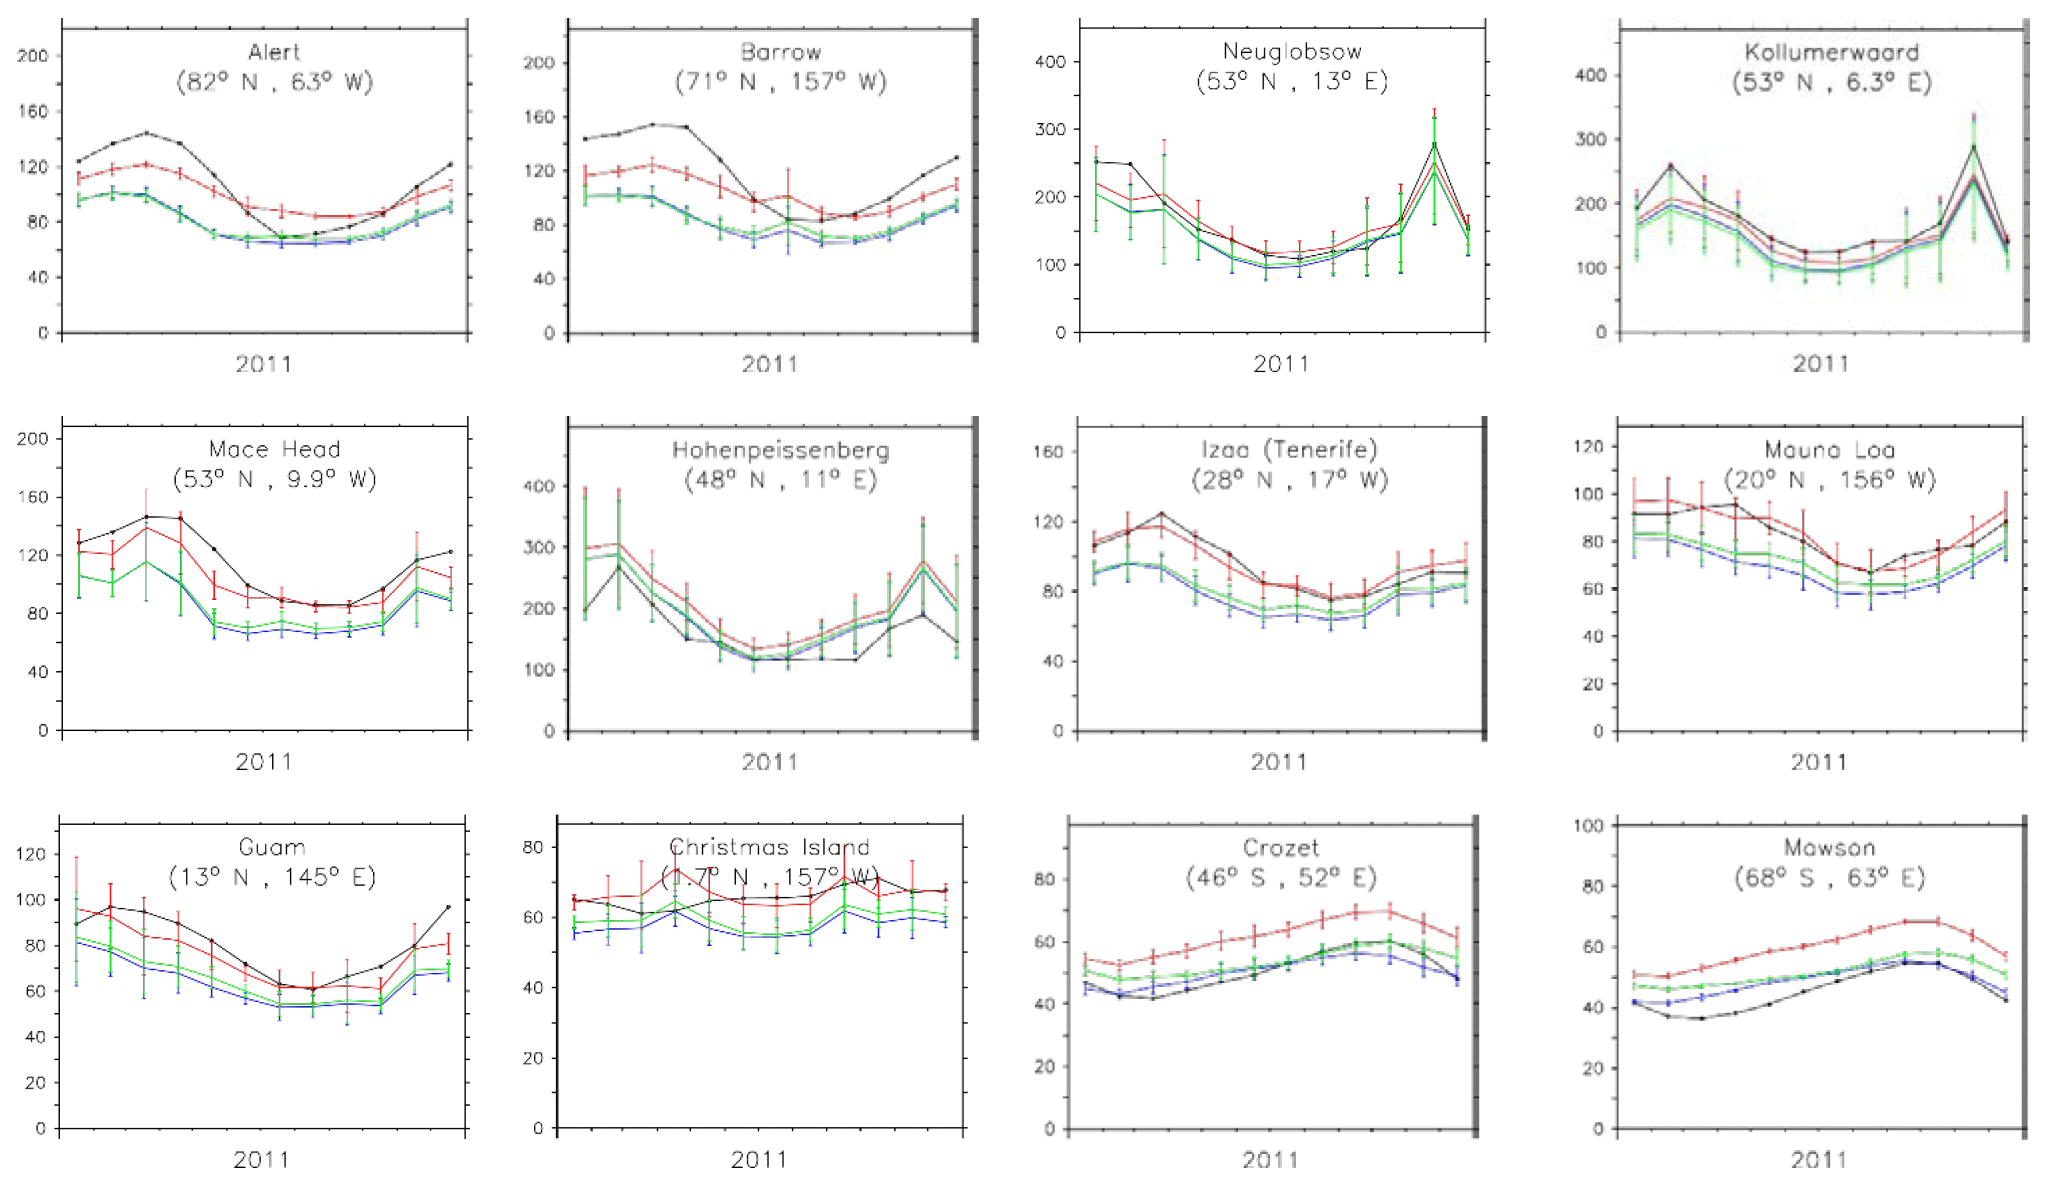 GMD - Quantifying uncertainties due to chemistry modelling